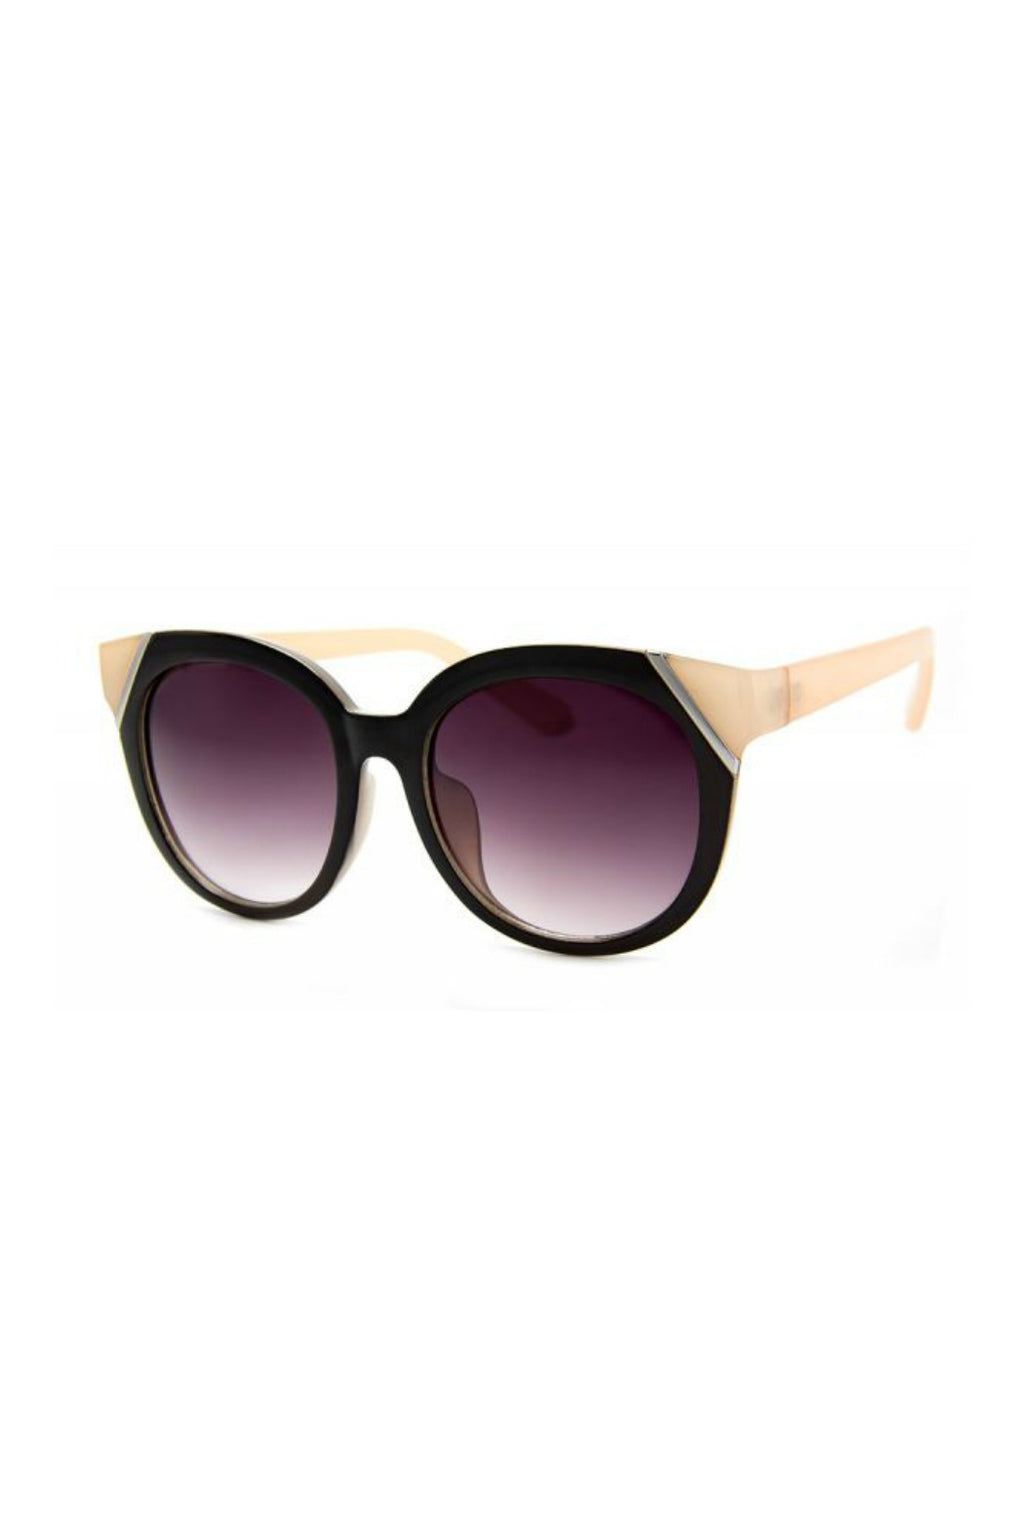 Mulberry Street Sunnies - Black/Cream